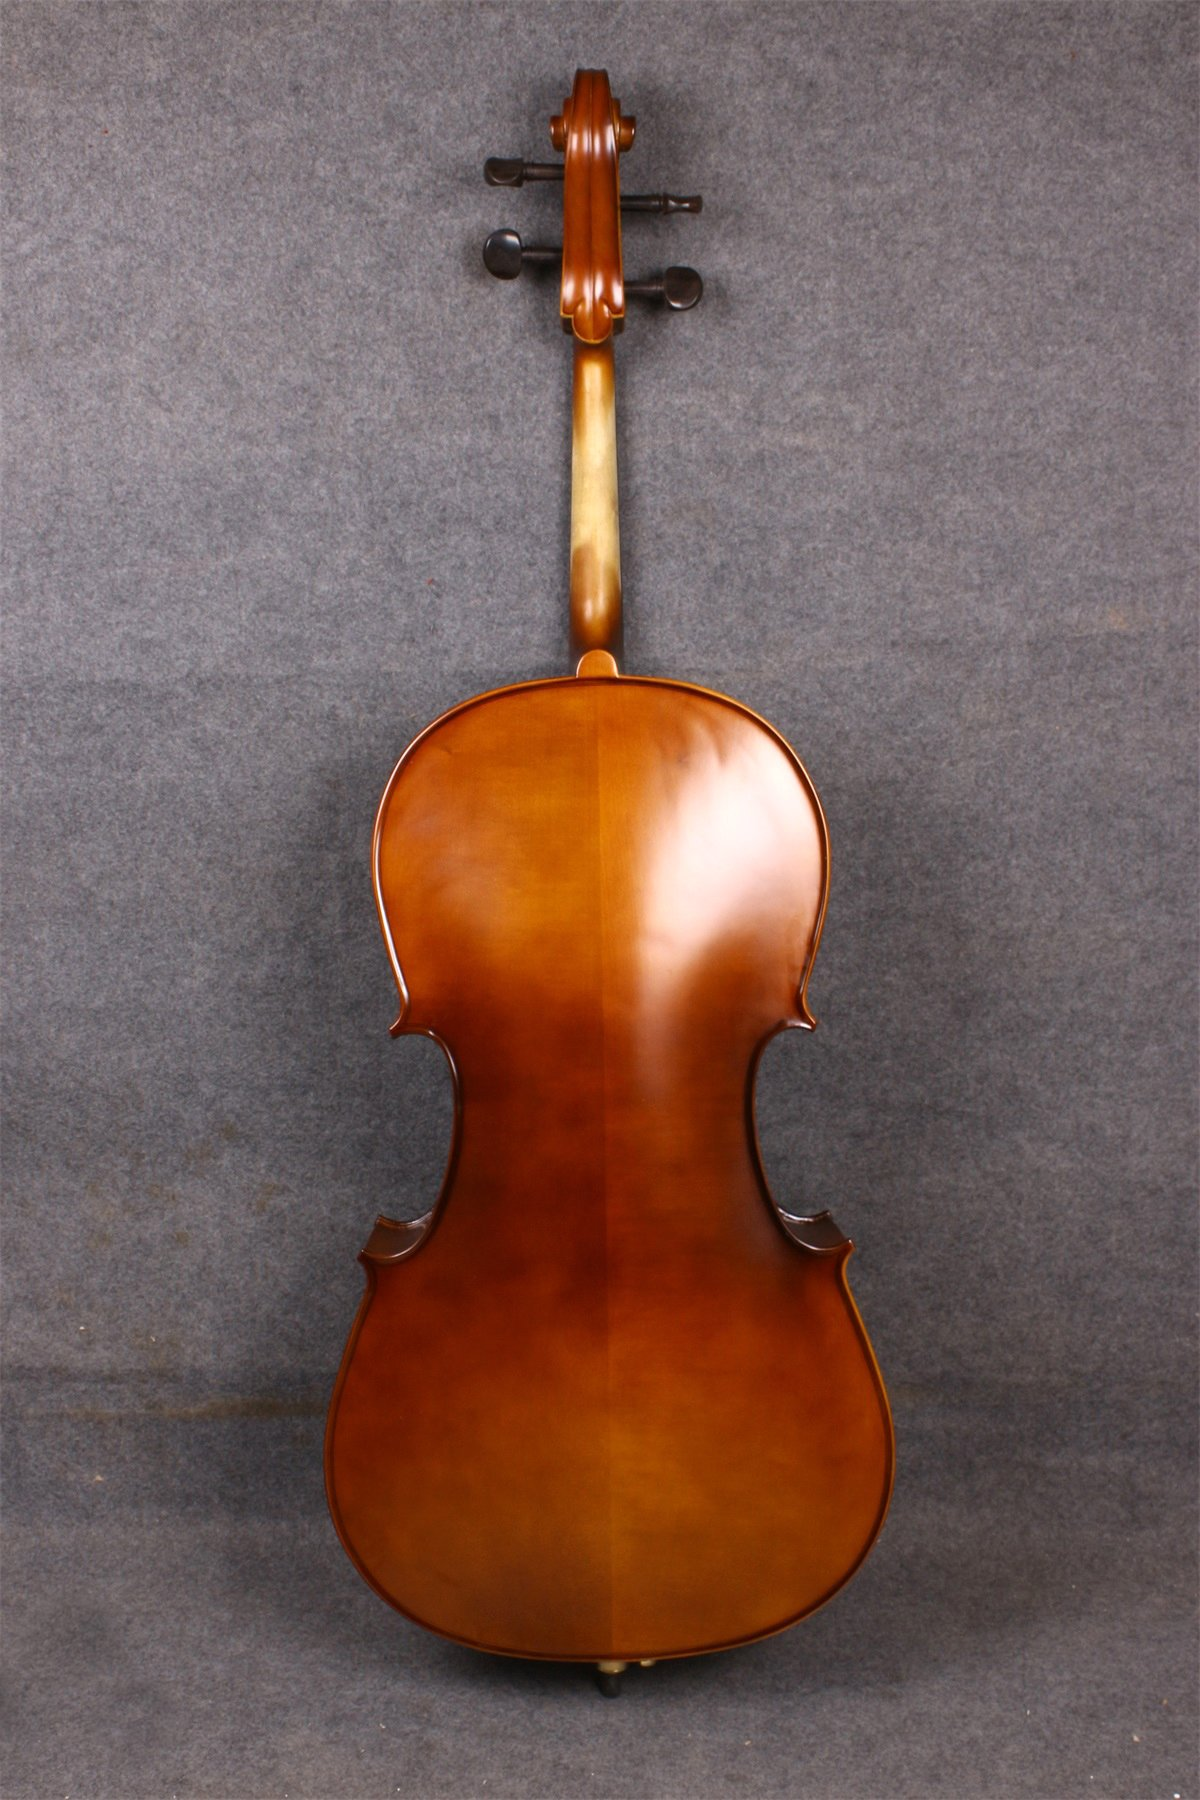 Yinfente Electric Acoustic Cello 4/4 Solid Maple Spruce wood Ebony Fittings Sweet Sound With Cello Bag Bow (Brown) by yinfente (Image #2)